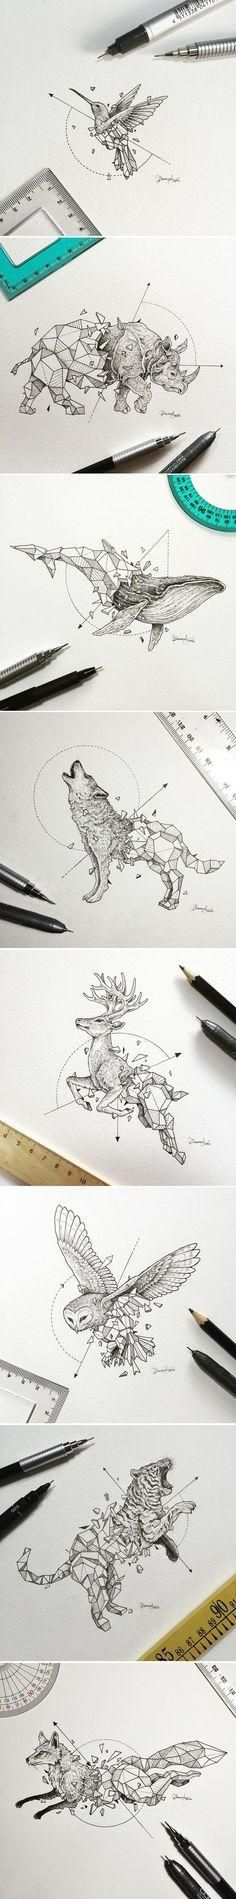 Philippines-based designer Kerby Rosanes has been doing intricate artwork with a simple collection of black pens for years now. One of his more recent projects caught our attention though, and it's because of the way it mixes two different styles so well that it might as well be the peanut butter and jelly of illustration. Take a look!